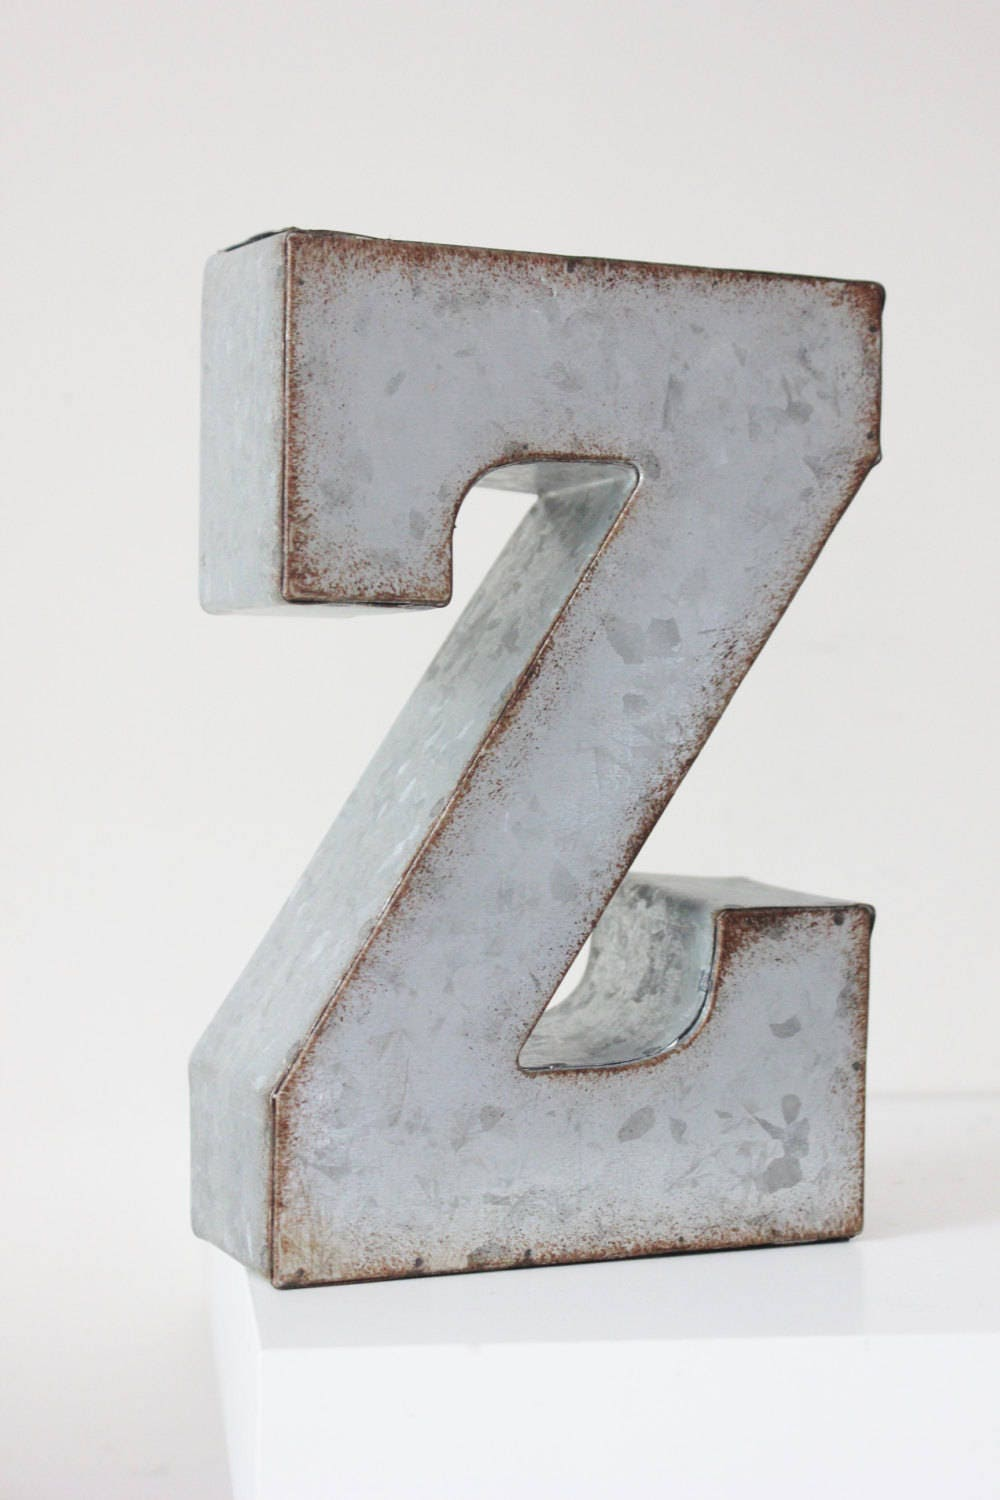 Metal Sign Letters For Sale Interesting Sale Metal Letter Alphabet A To Z Zinc Steel Initial Home Room Inspiration